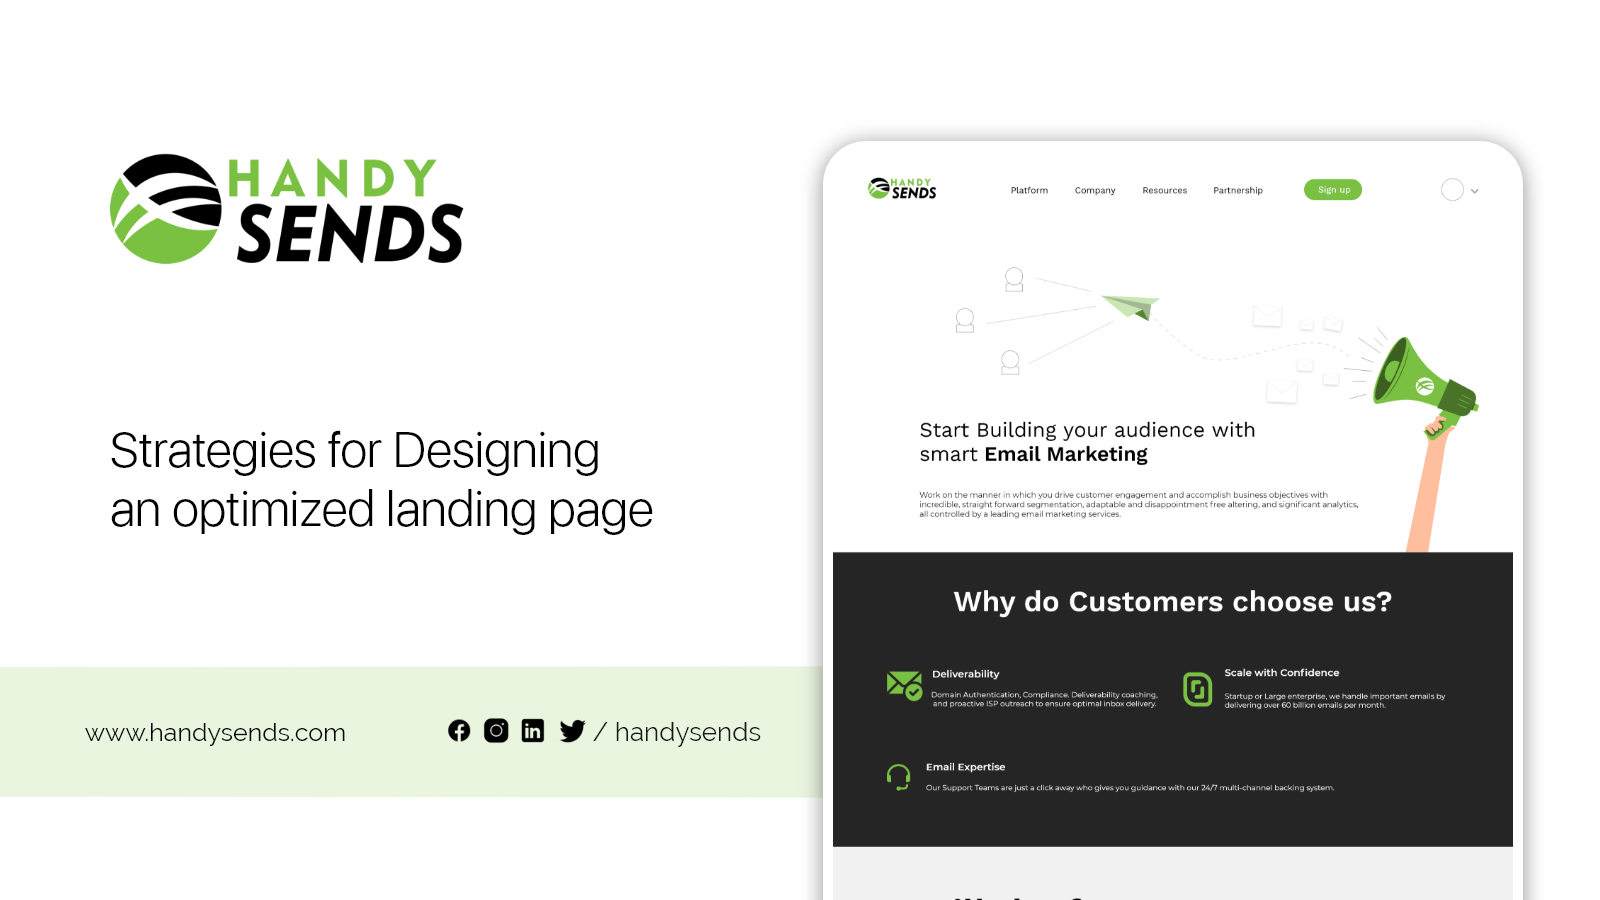 Strategies for Designing an optimized landing page